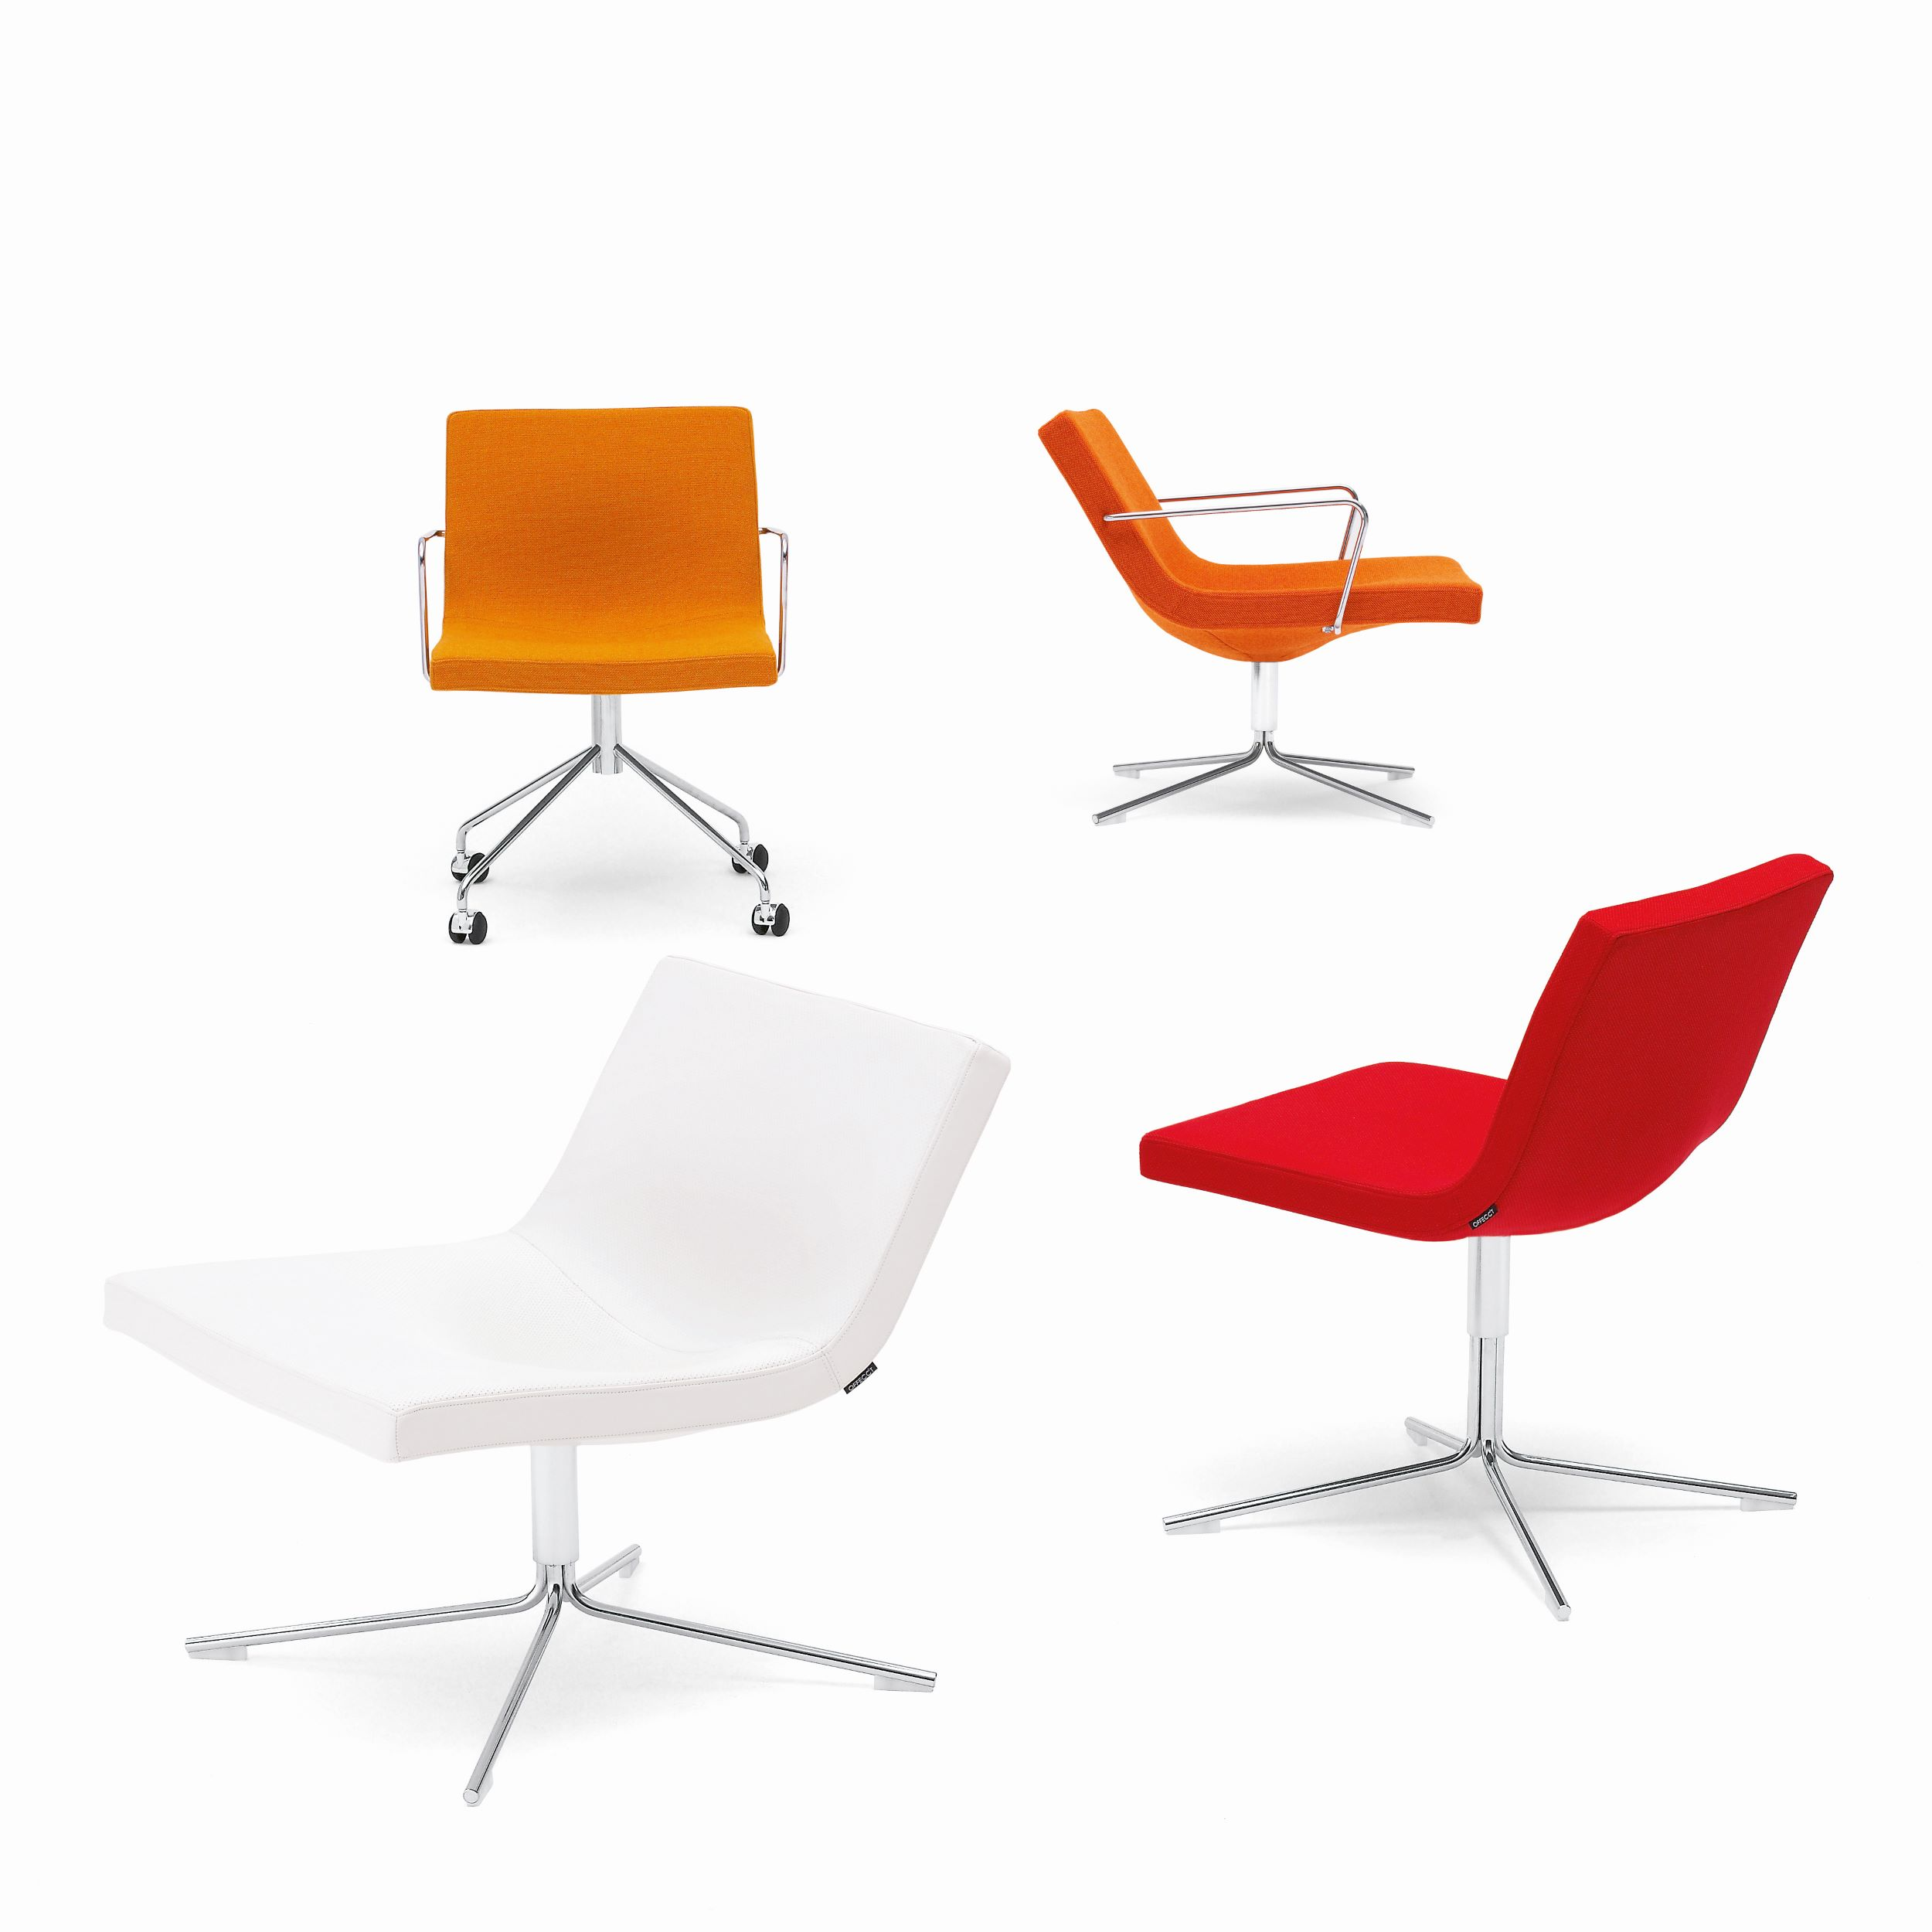 Bond Chair With 4 Wheels Furniture By Jean Marie